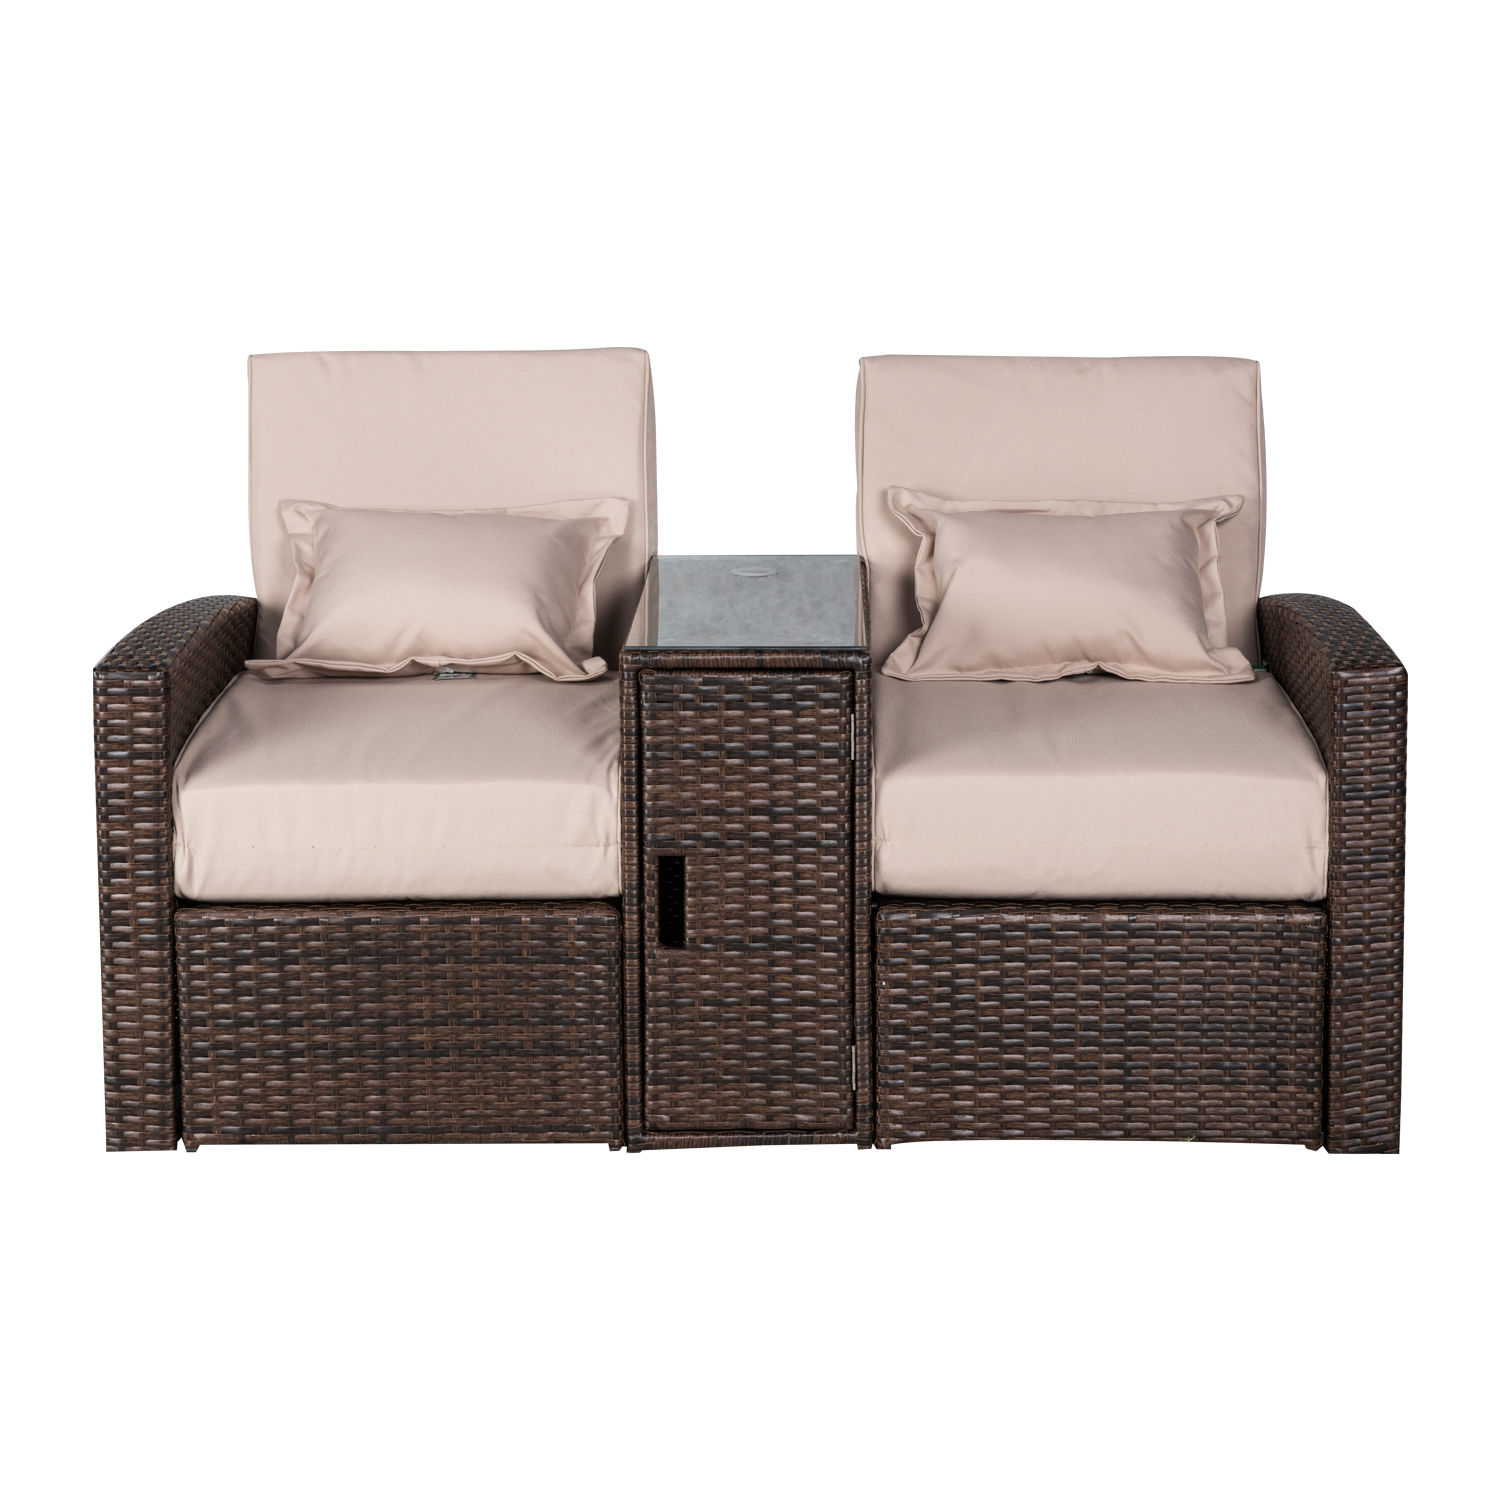 outdoor sofa lounge furniture gingham covers 3pc patio rattan wicker chaise